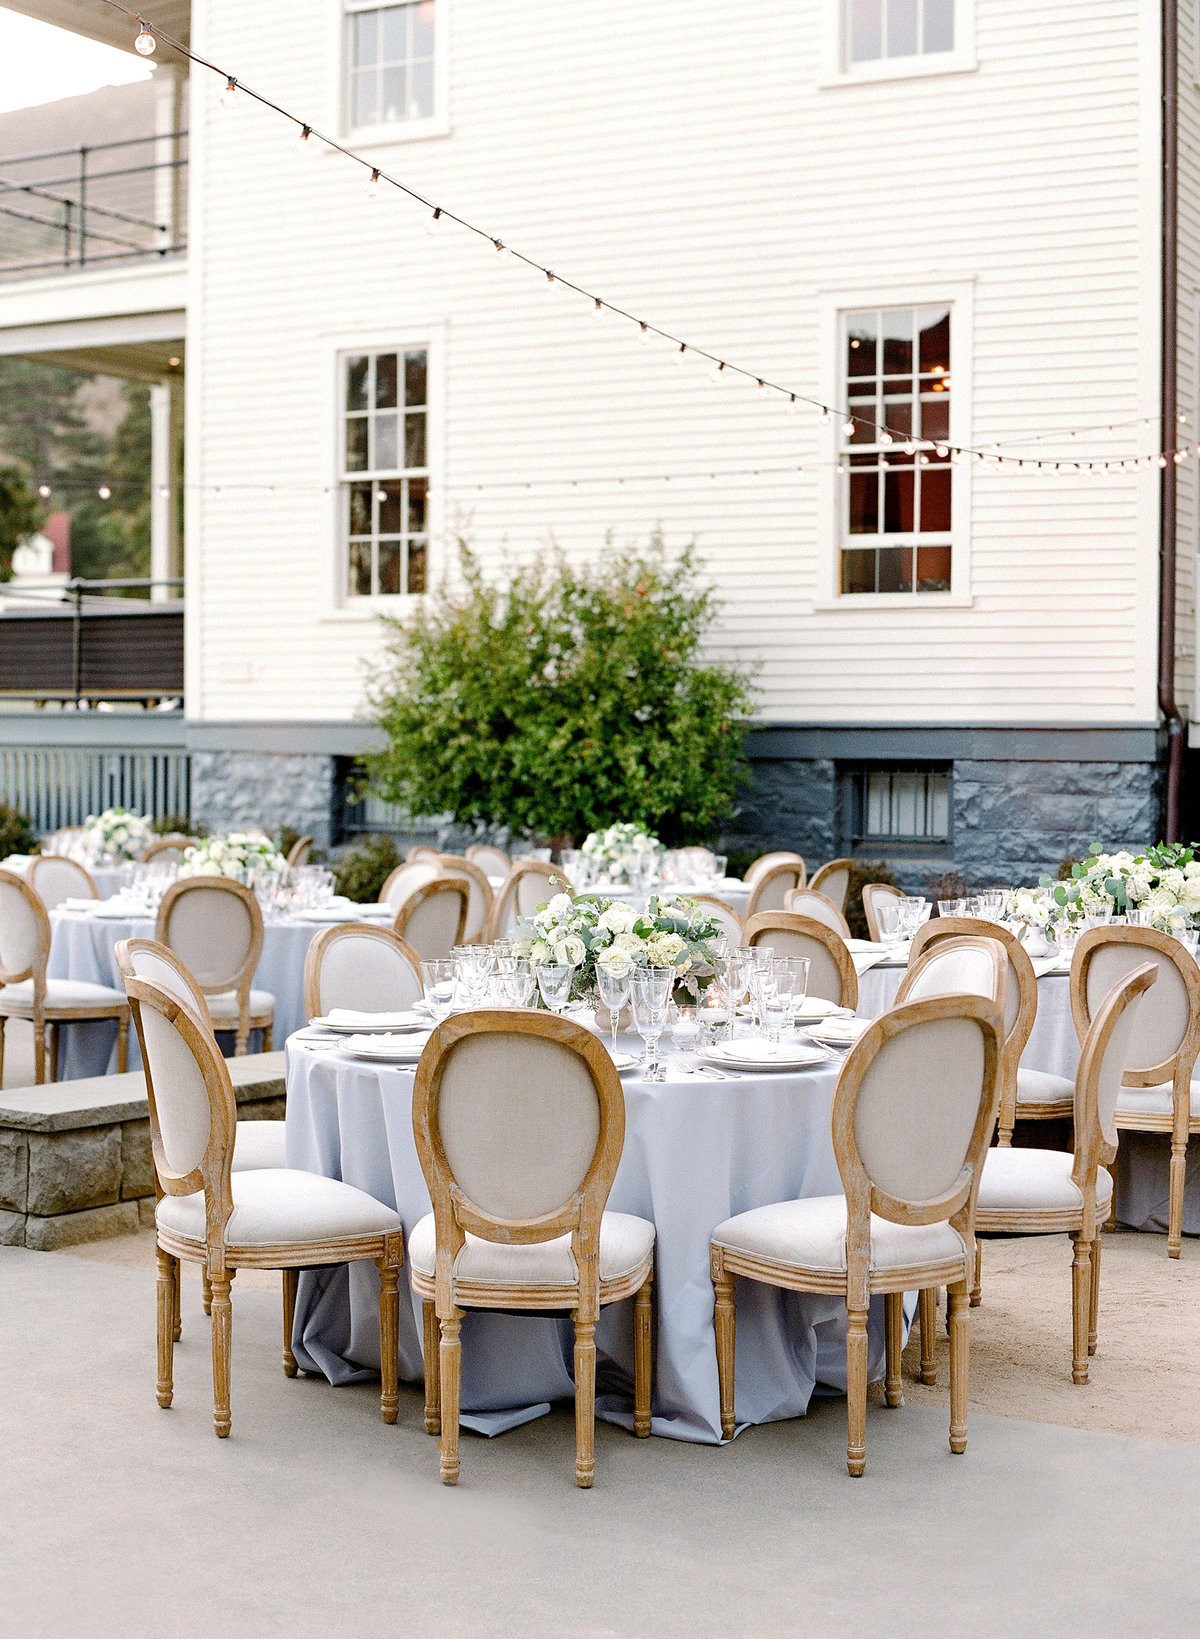 Tables and chairs for Cavallo Point wedding by Jenny Schneider Events.